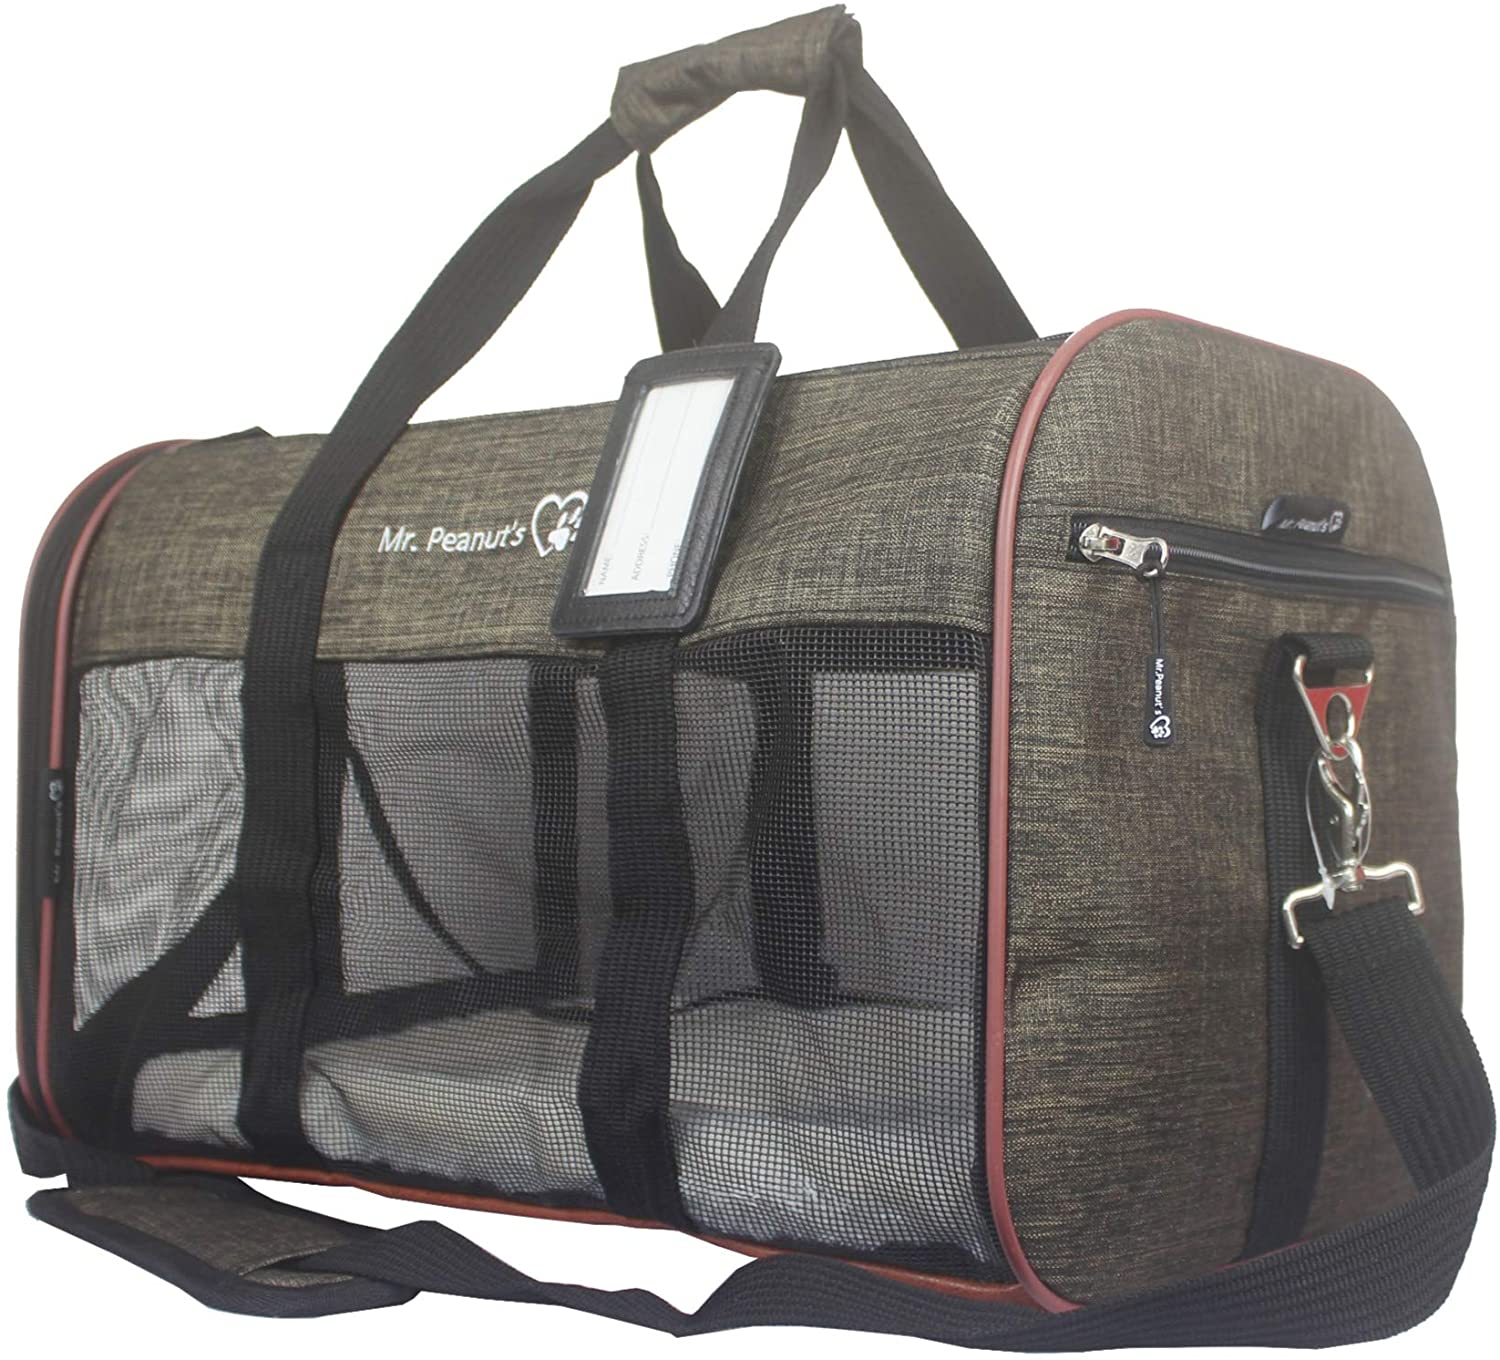 travel bag for middle sized dogs